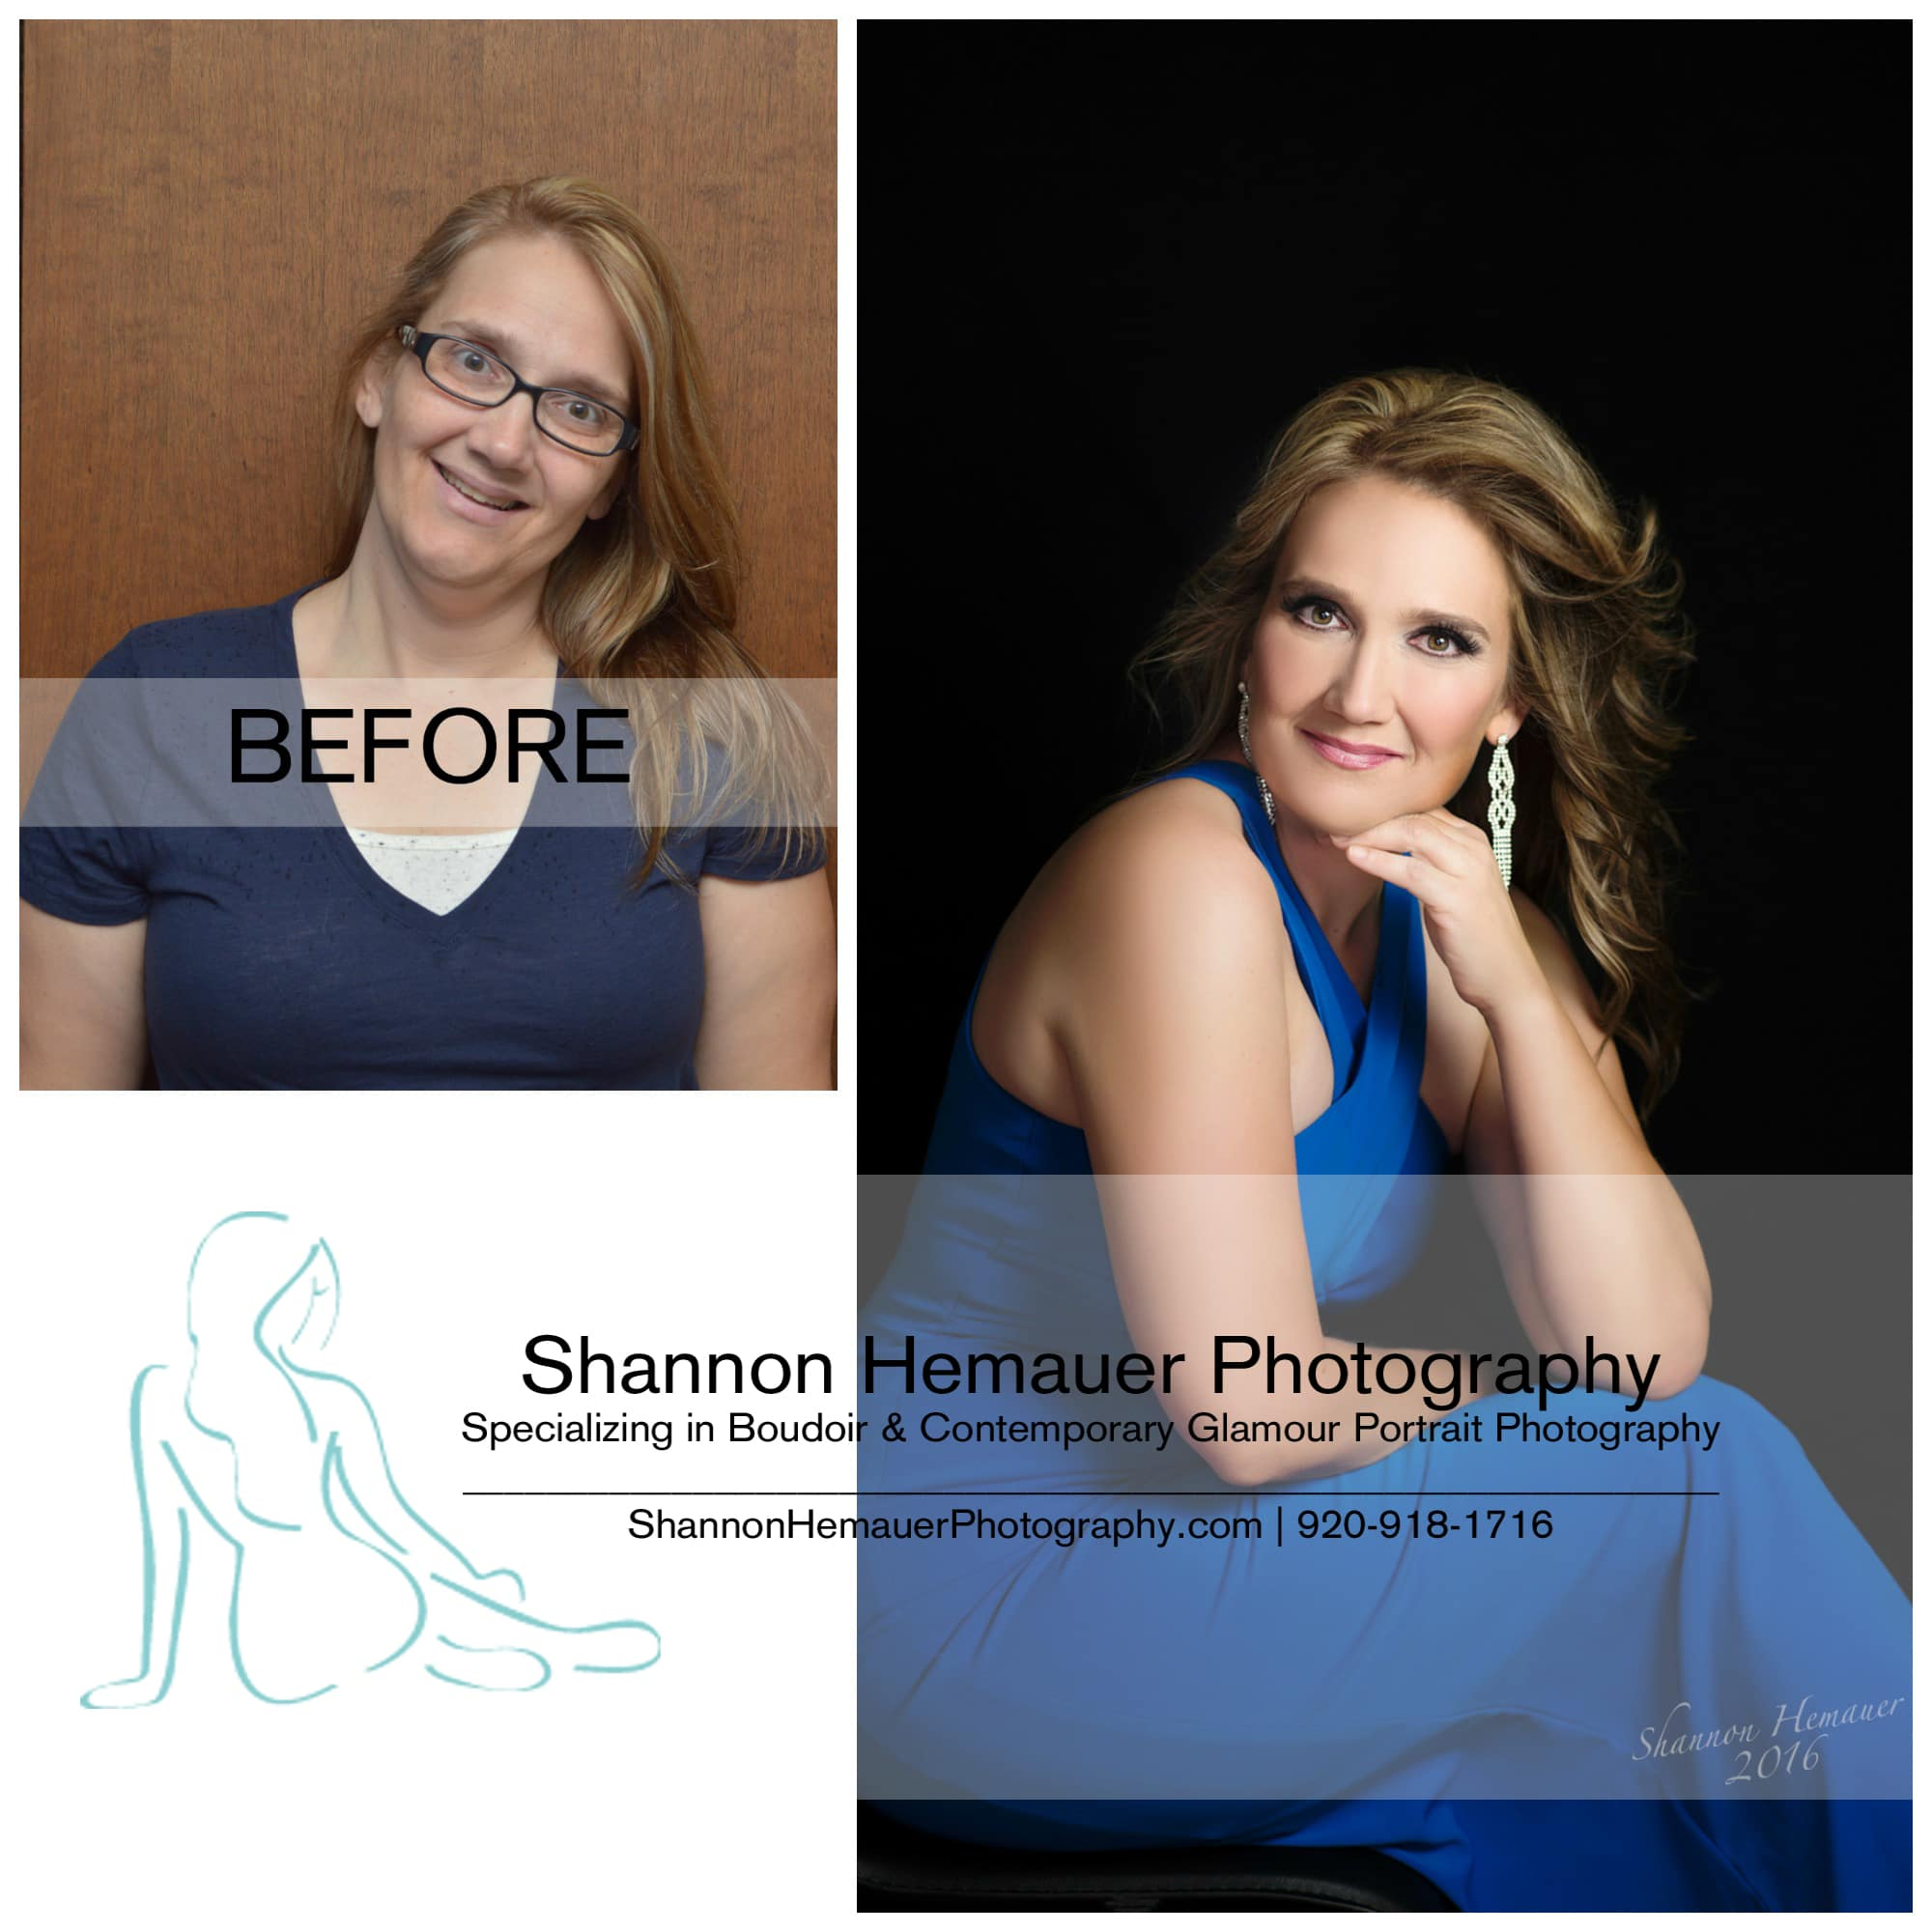 Shannon Hemauer Photography Gettysburg PA Boudoir Contemporary Glamour